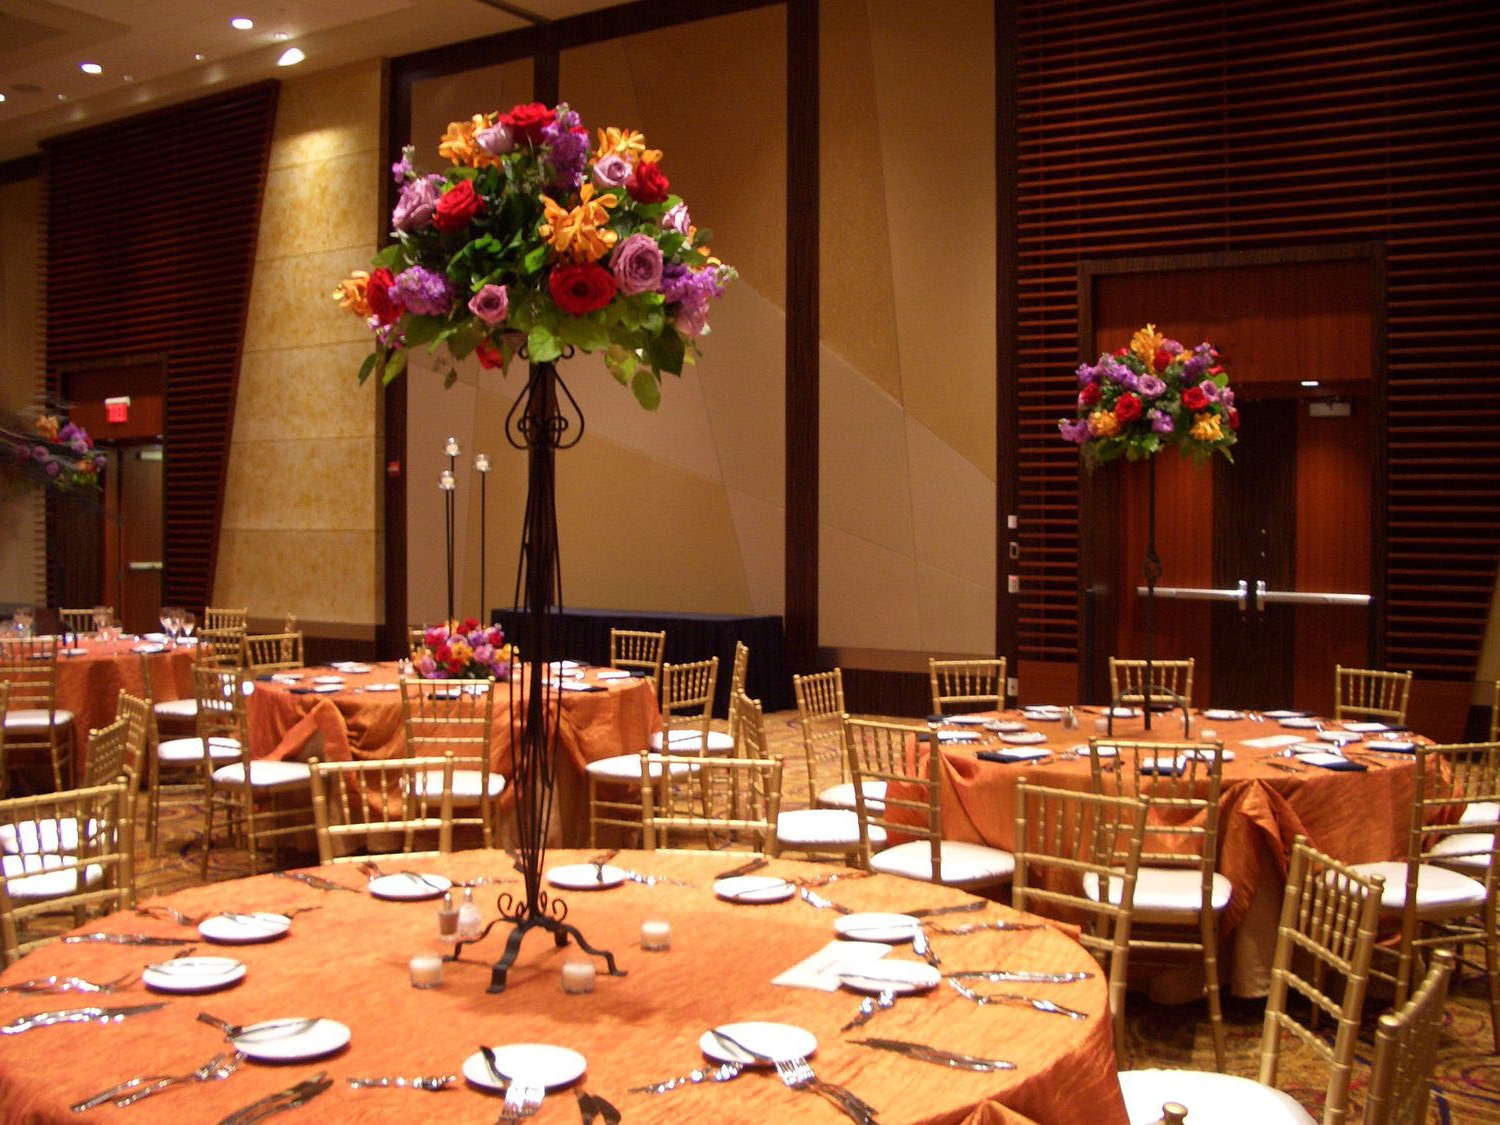 Simple Tall Flower Centerpieces For Wedding Reception (Image 15 of 30)